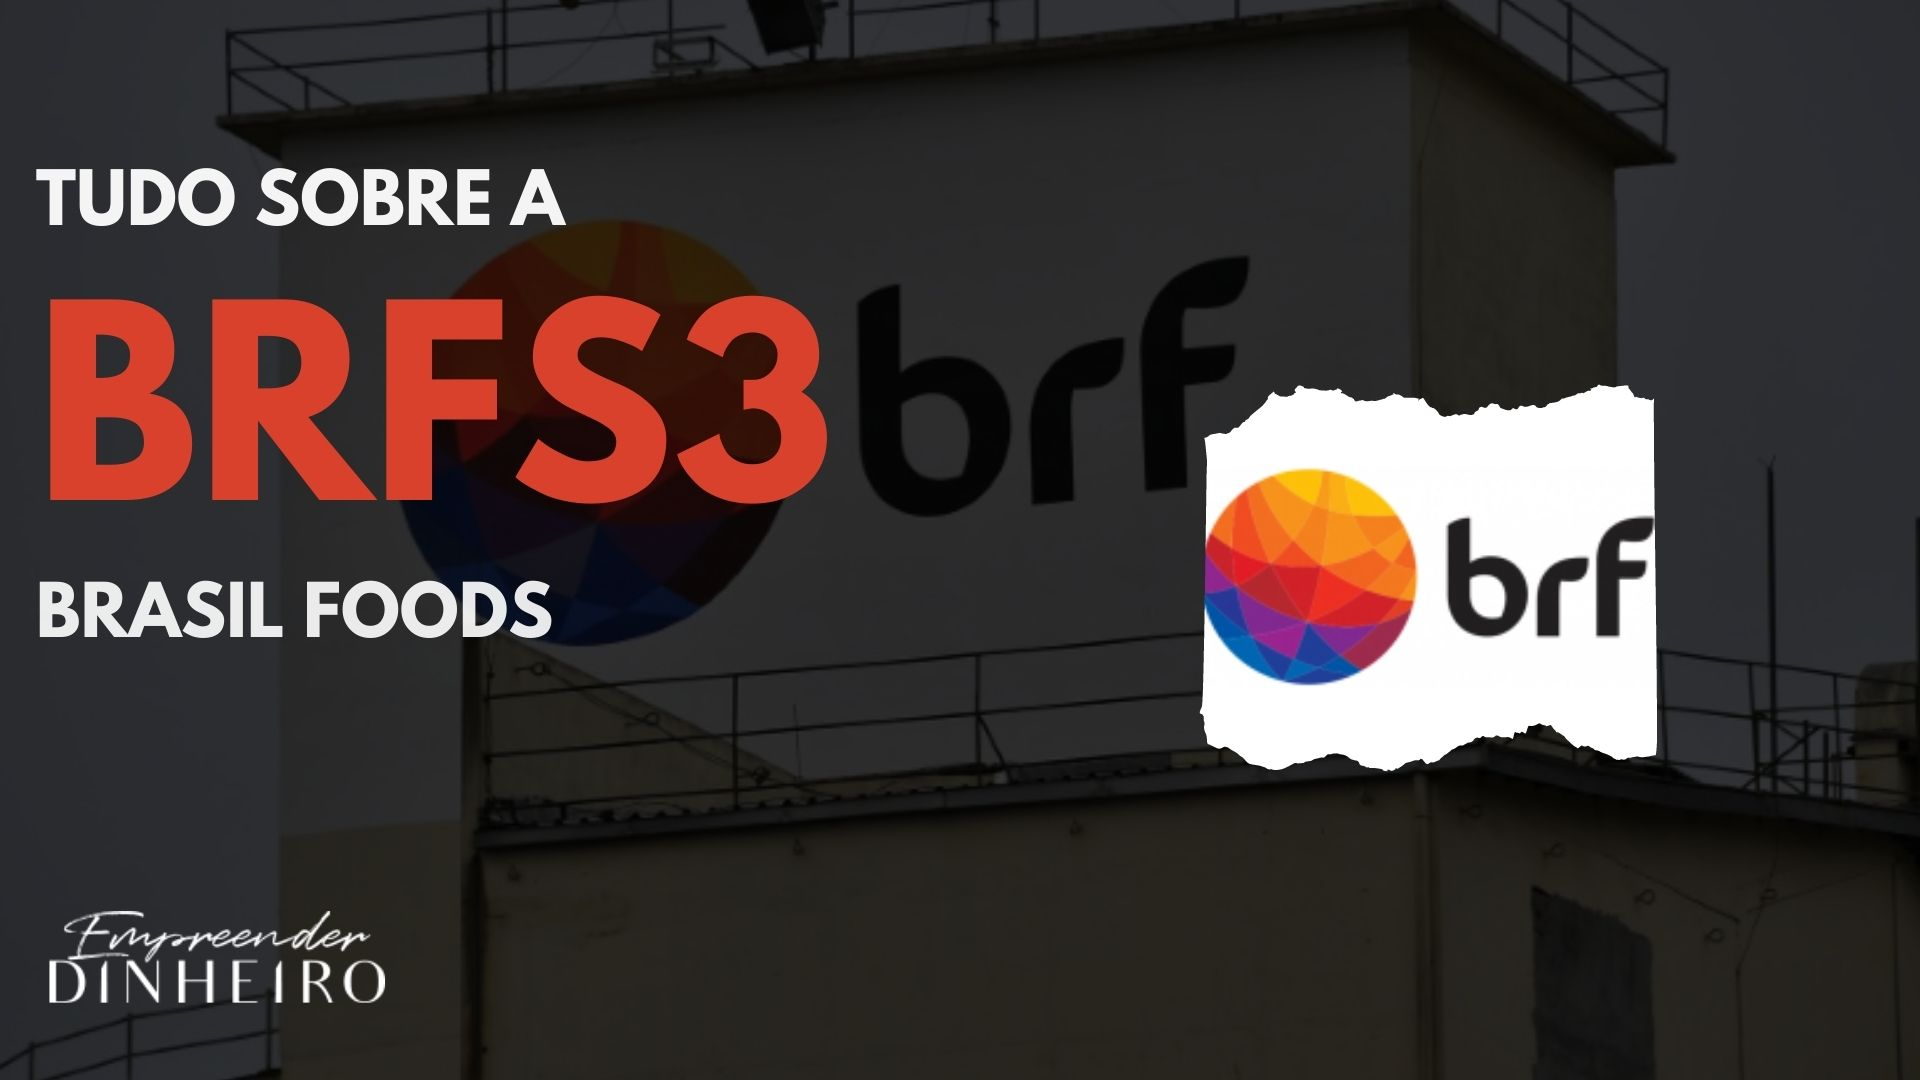 brsf3